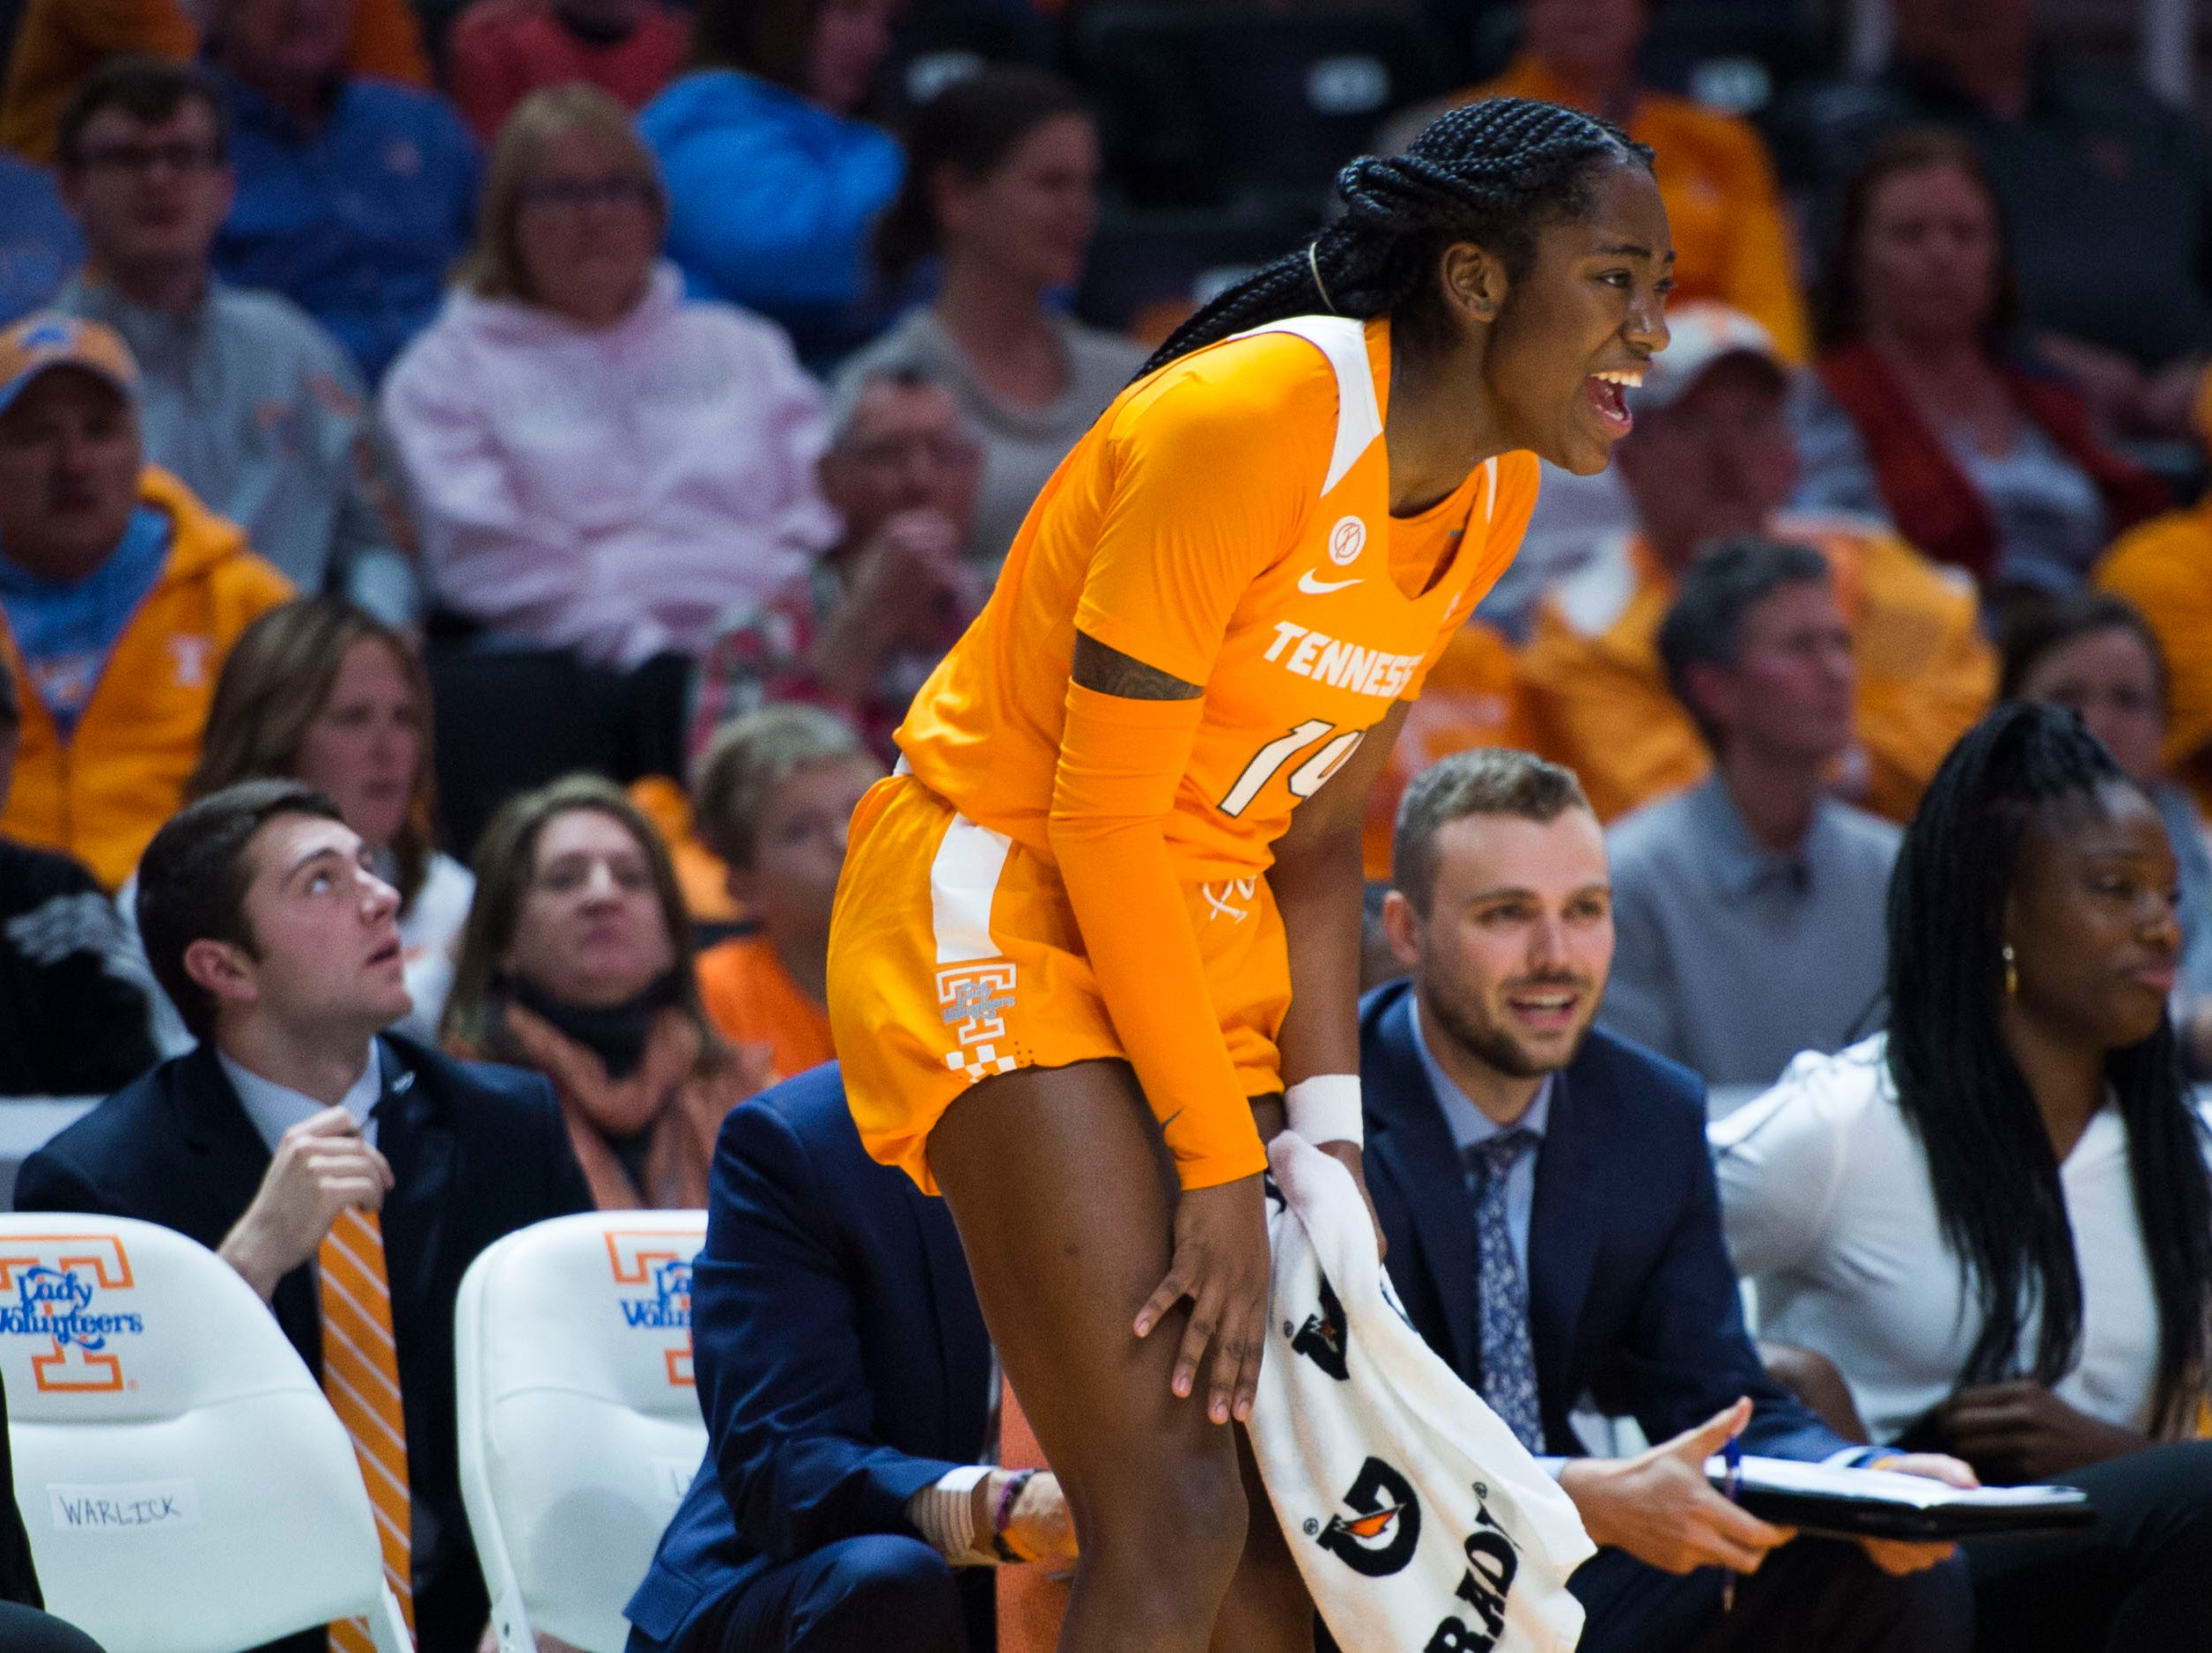 Tennessee's Zaay Green (14) reacts to a call during a women's basketball game between Tennessee and Stanford at Thompson-Boling Arena Tuesday, Dec. 18, 2018.